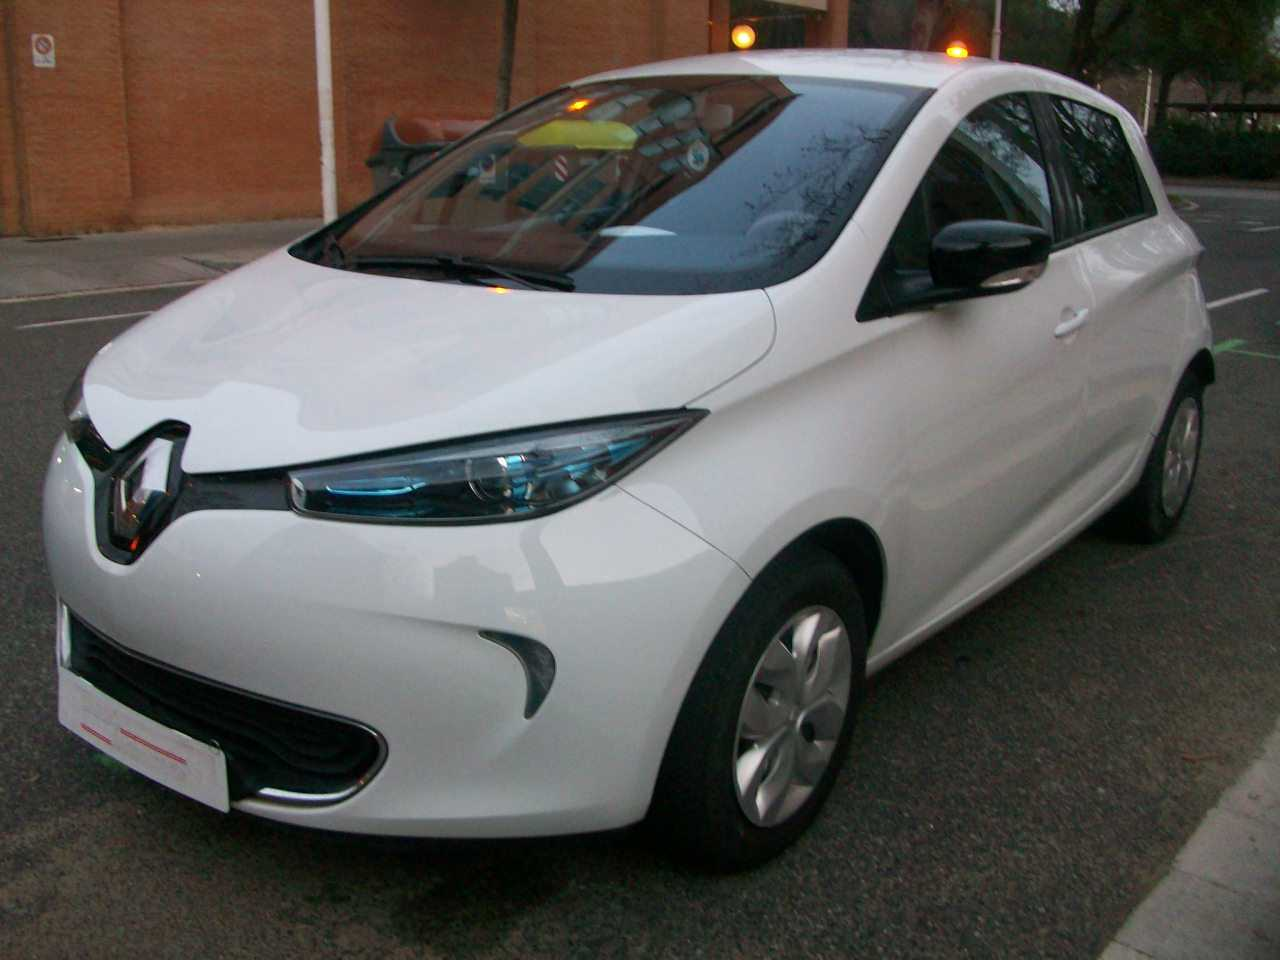 Renault Zoe LIFE   68,000 KMS  IVA DEDUCIBLE   - Foto 1